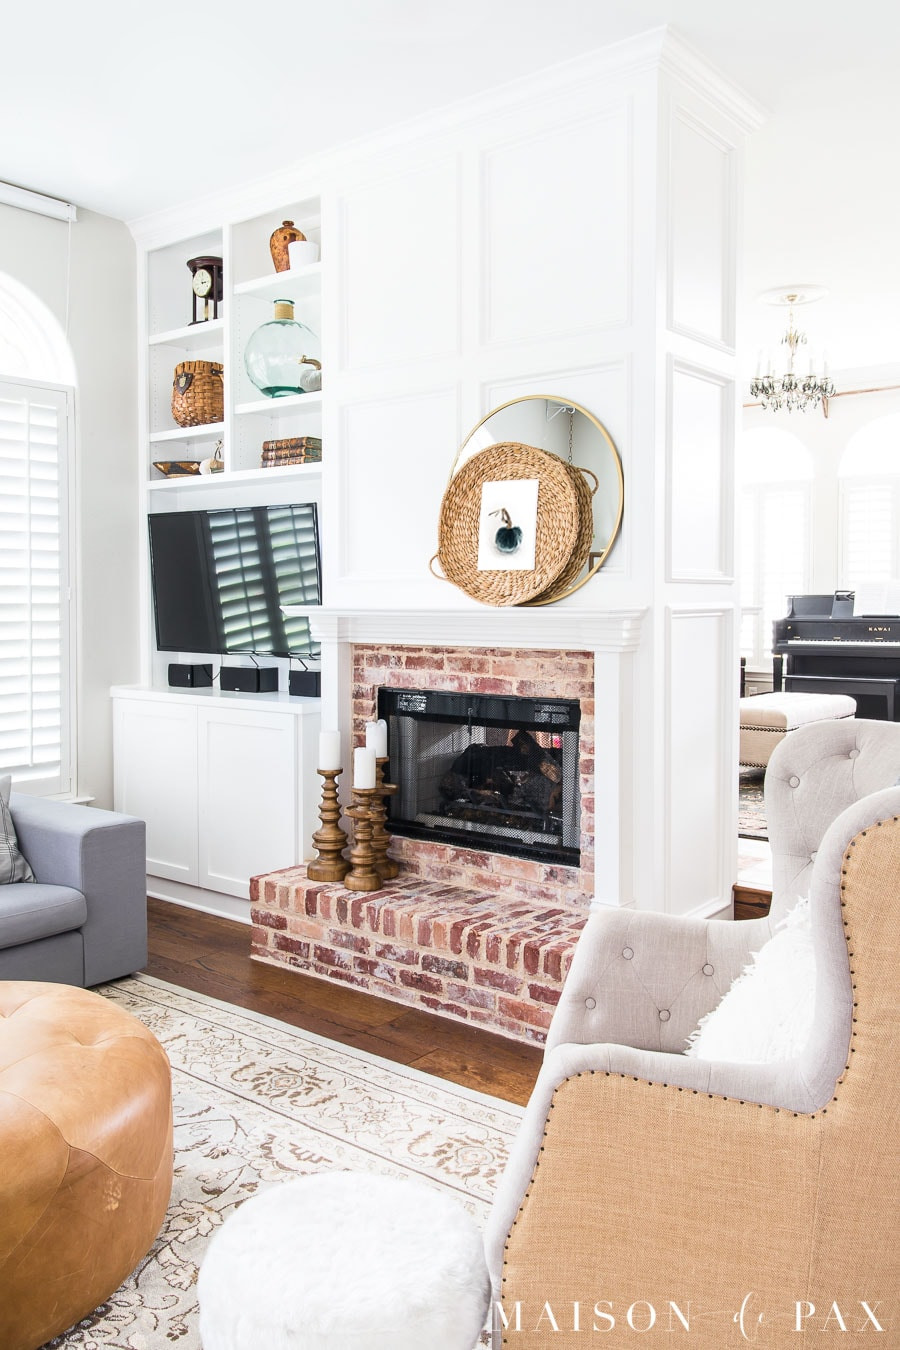 Update your living room for fall with these six EASY steps! #falldecor #falldecorating #easydecorating #10minutedecorating #fallhometour #neutraldecorating #fireplace